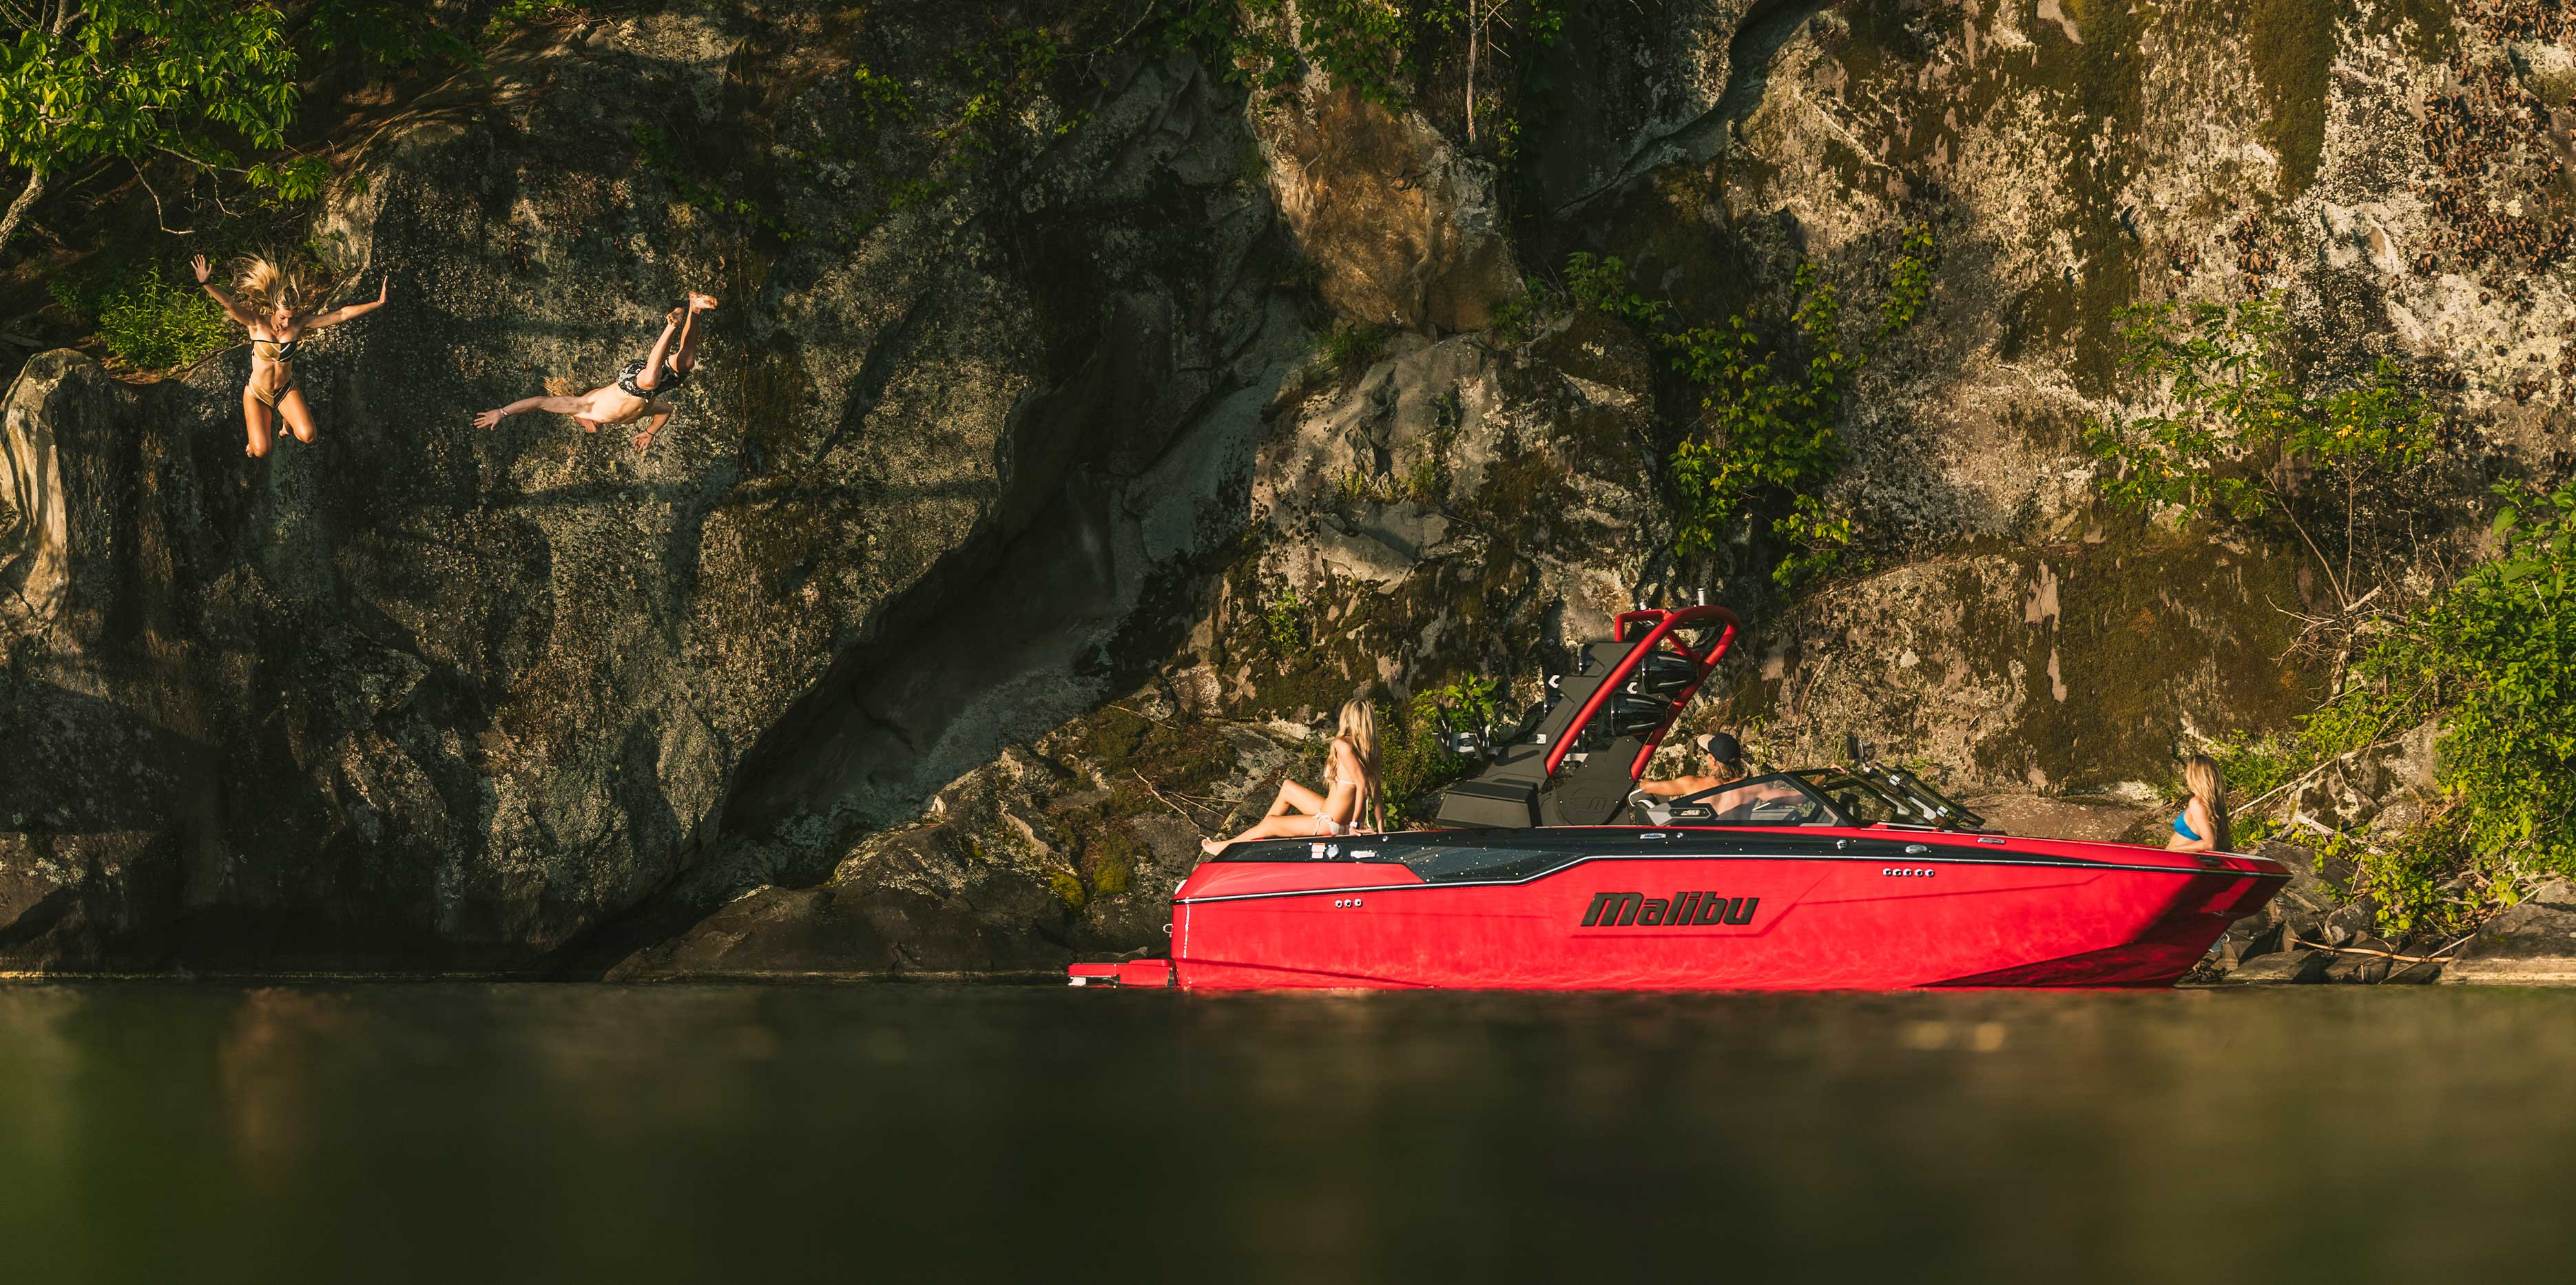 The 2021 Malibu Boats All-New M220 Lifestyle